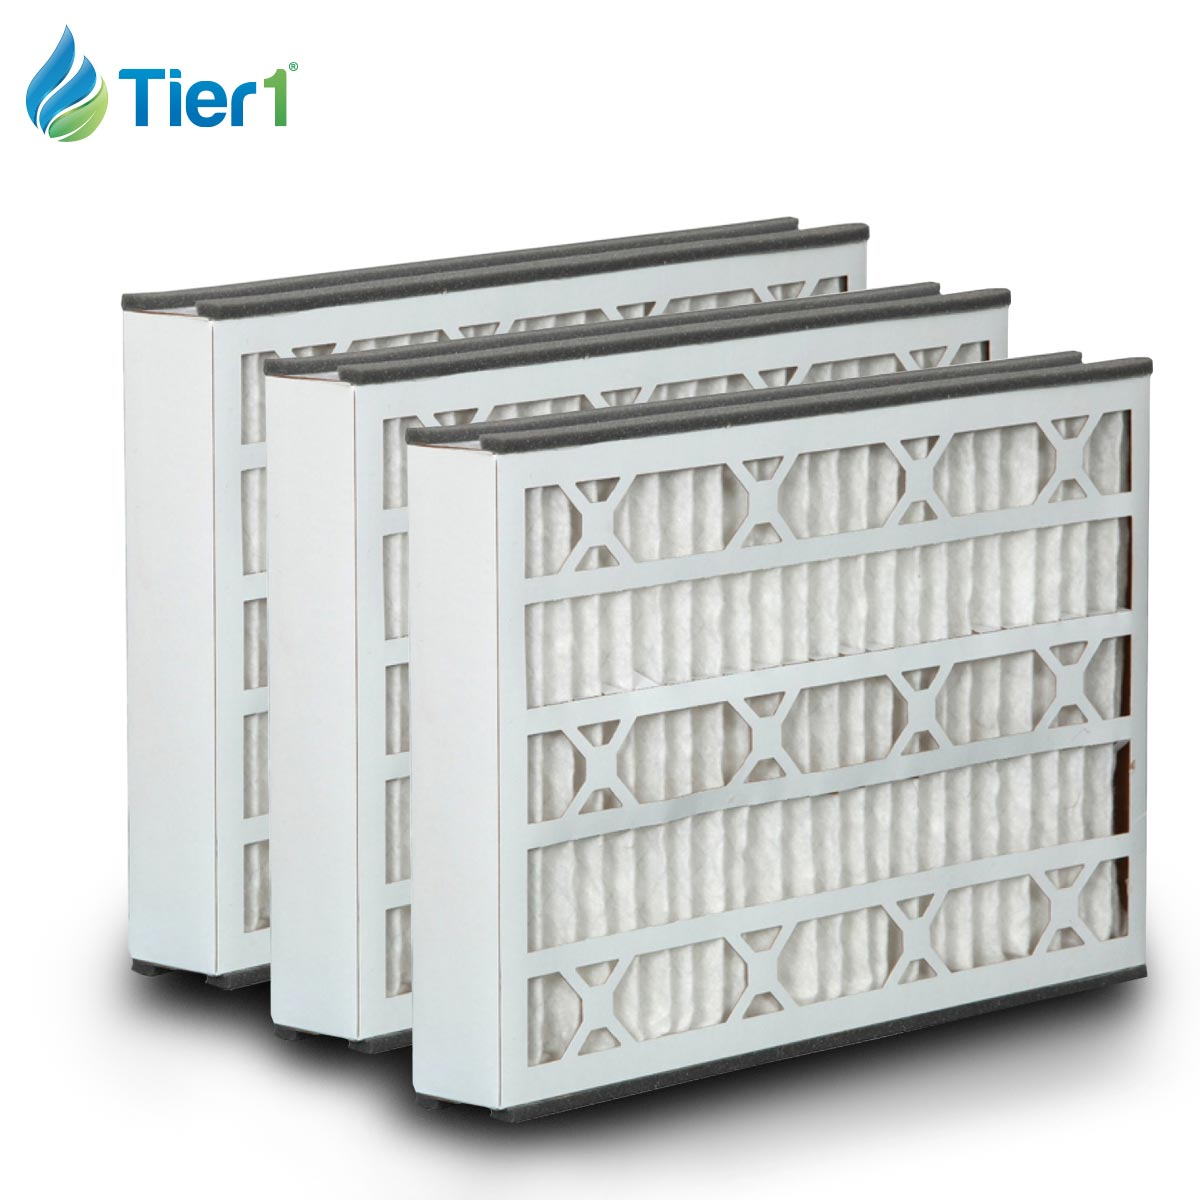 Tier1 brand replacement for BDP - 16 x 25 x 3 - MERV 8 (3-Pack) TIER1-DPFR16X25X3DBP